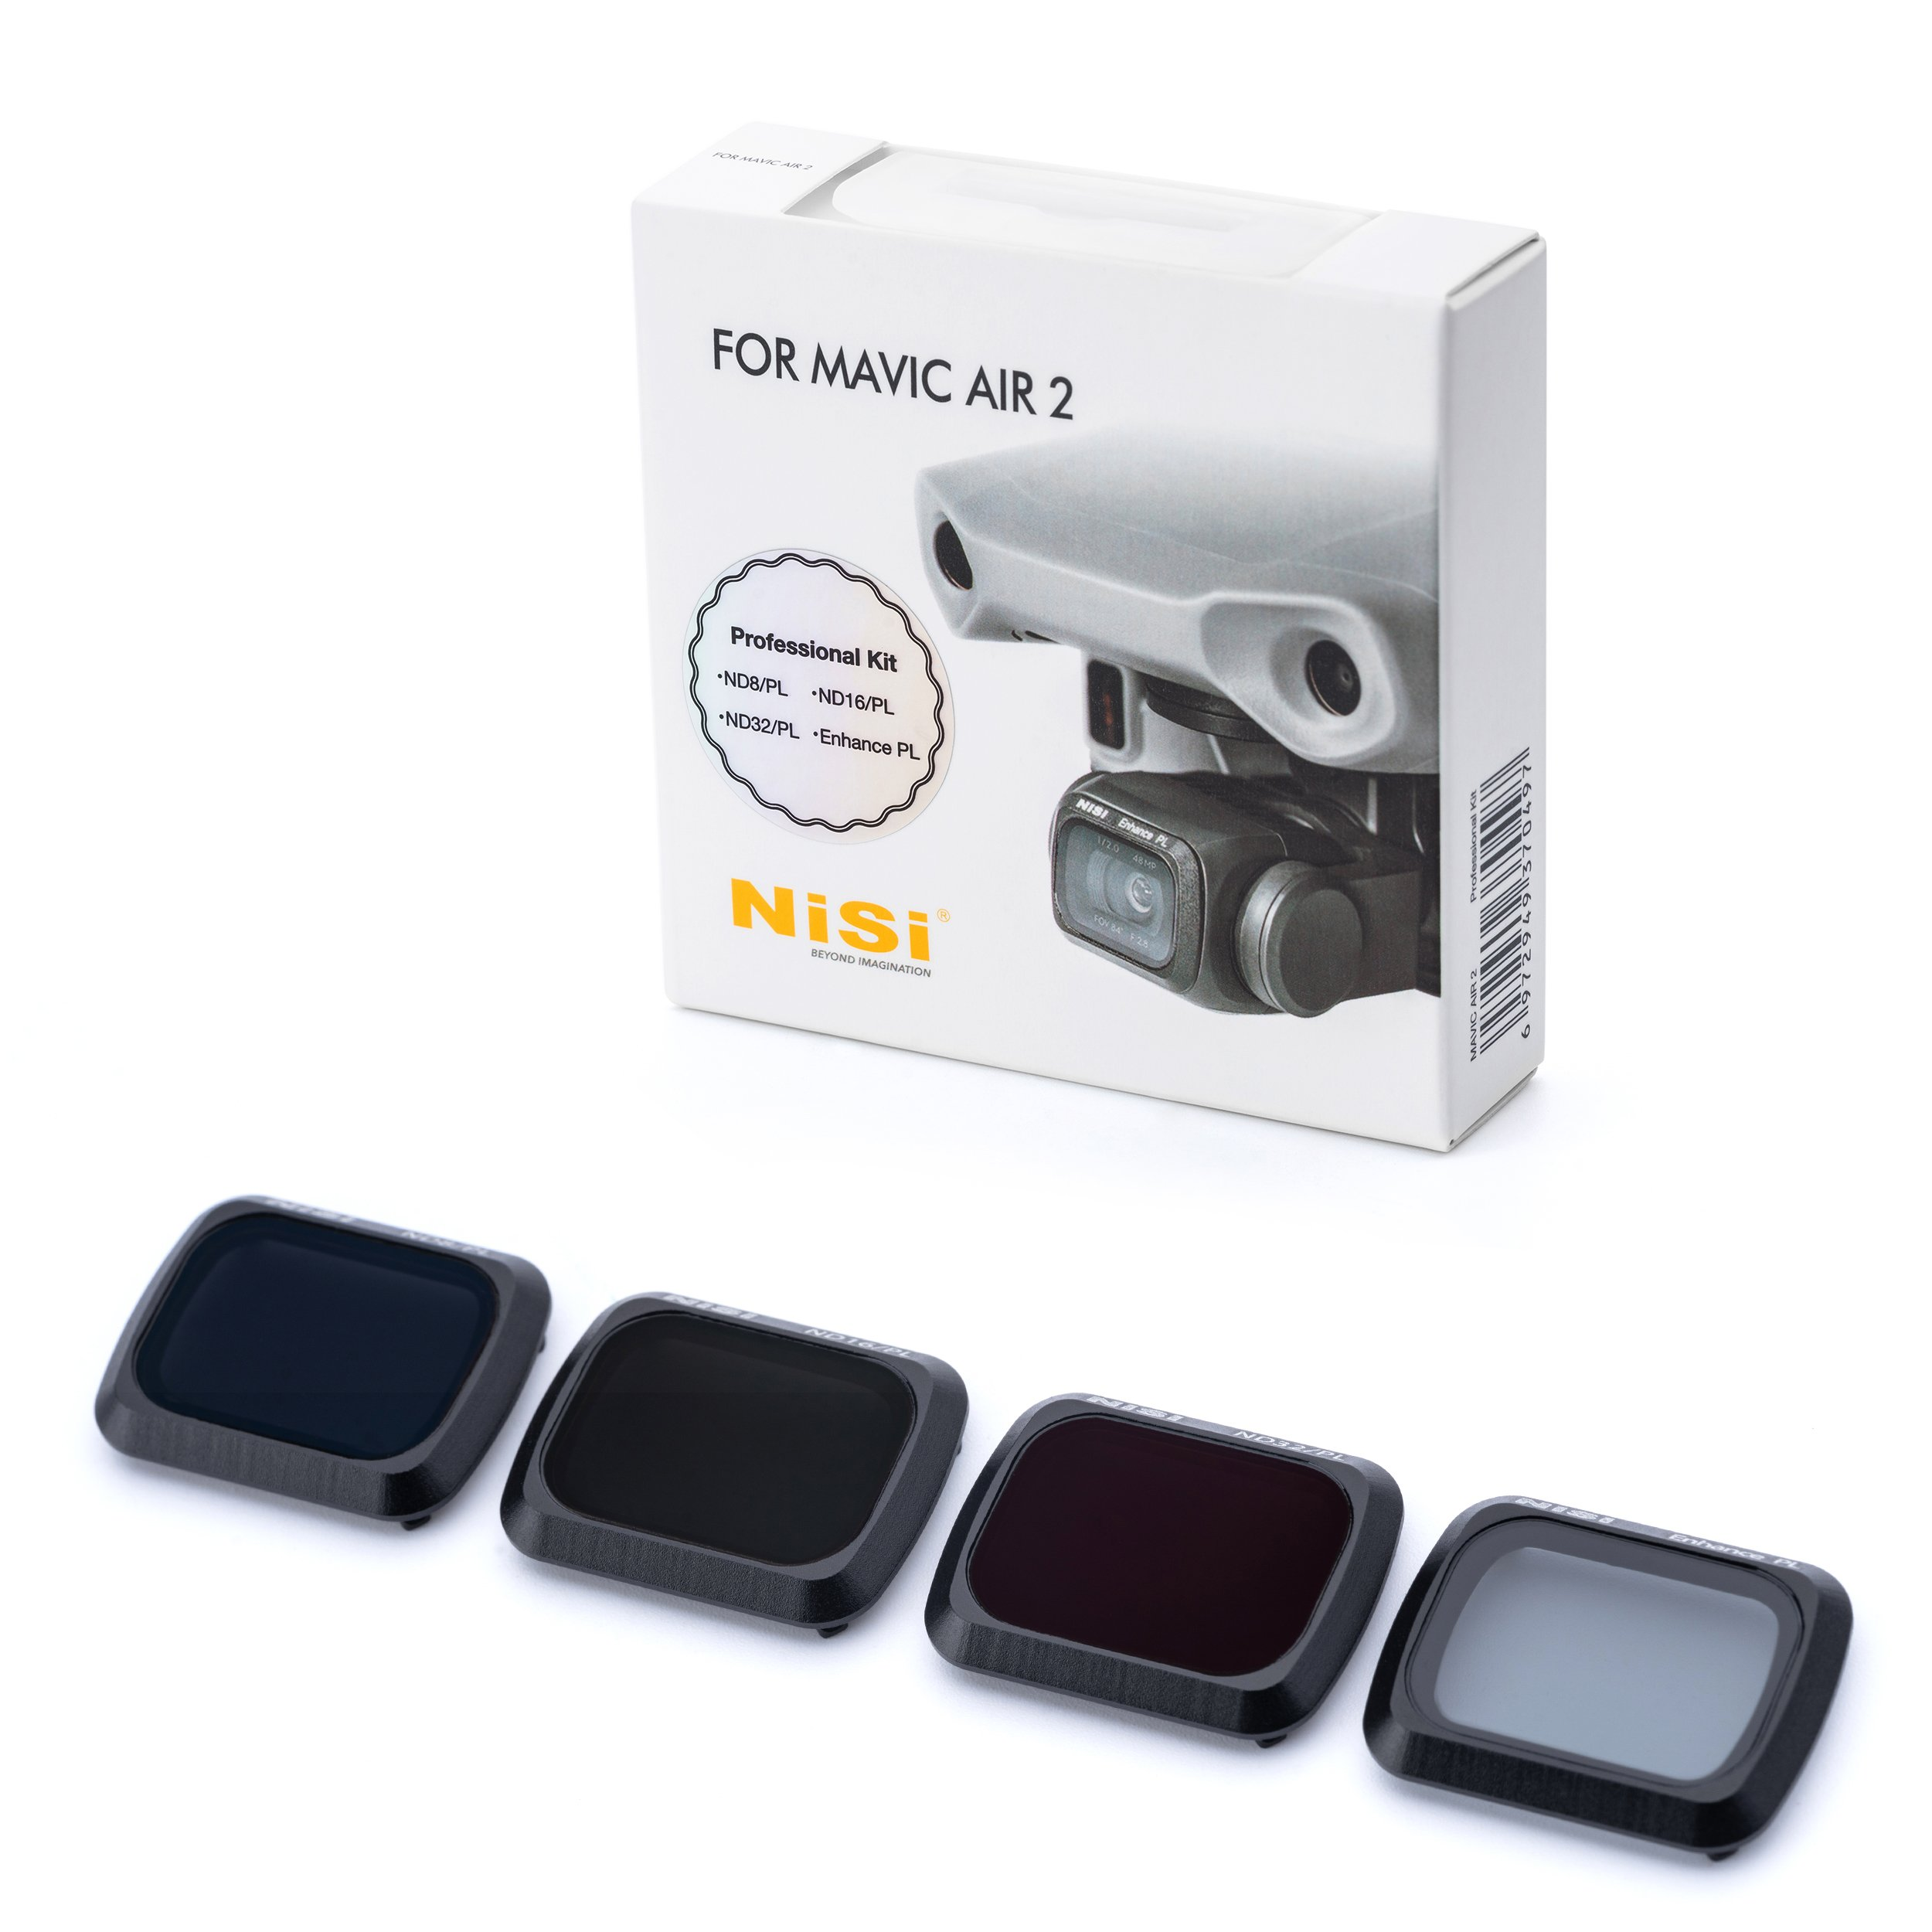 NiSi Drohnenfilter DJI Mavic Air 2 Professional Kit